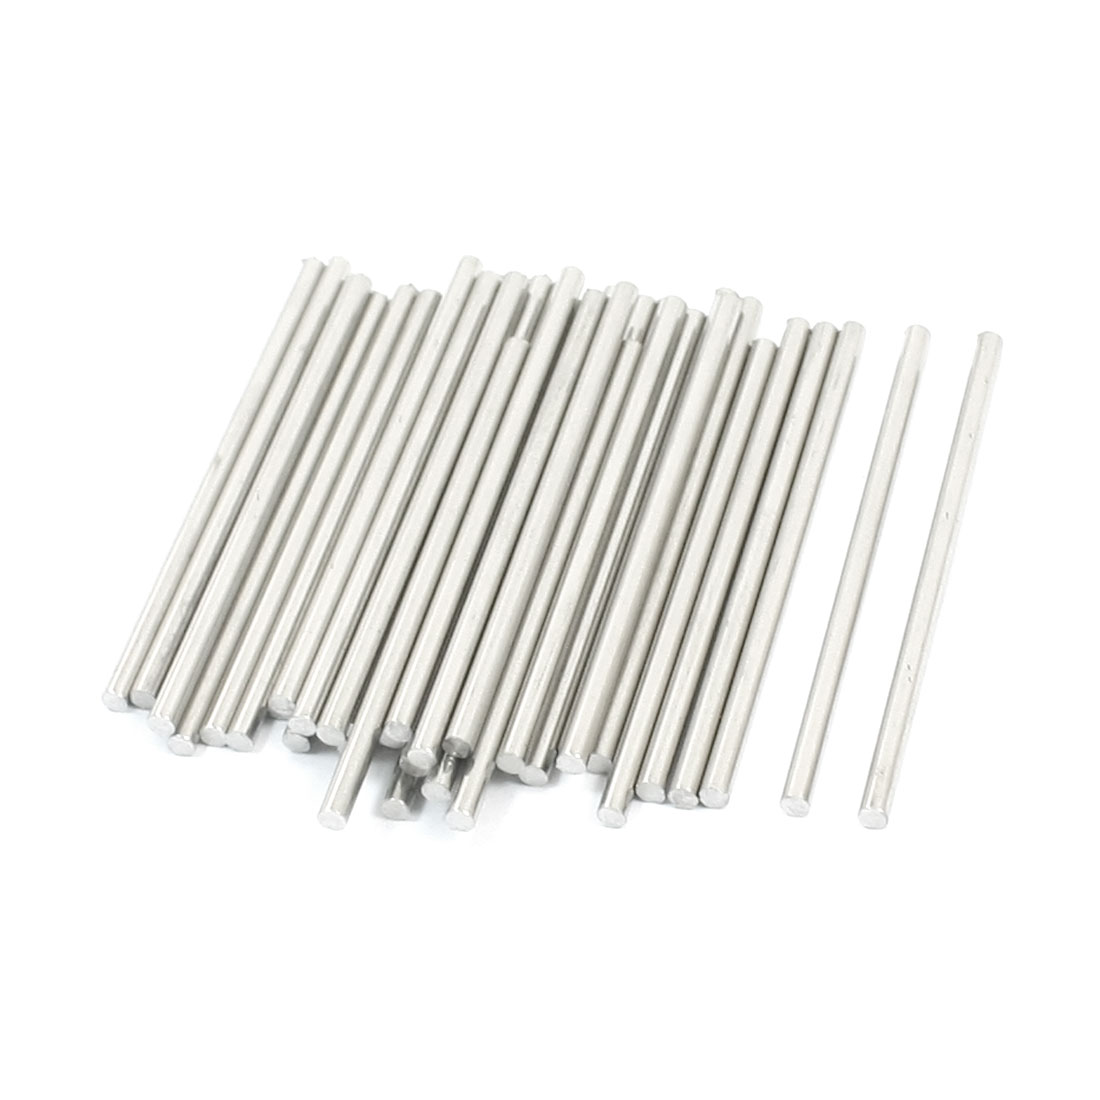 40Pcs 45 x 2mm Hardware Tools Stainless Steel Round Rods for Car Model